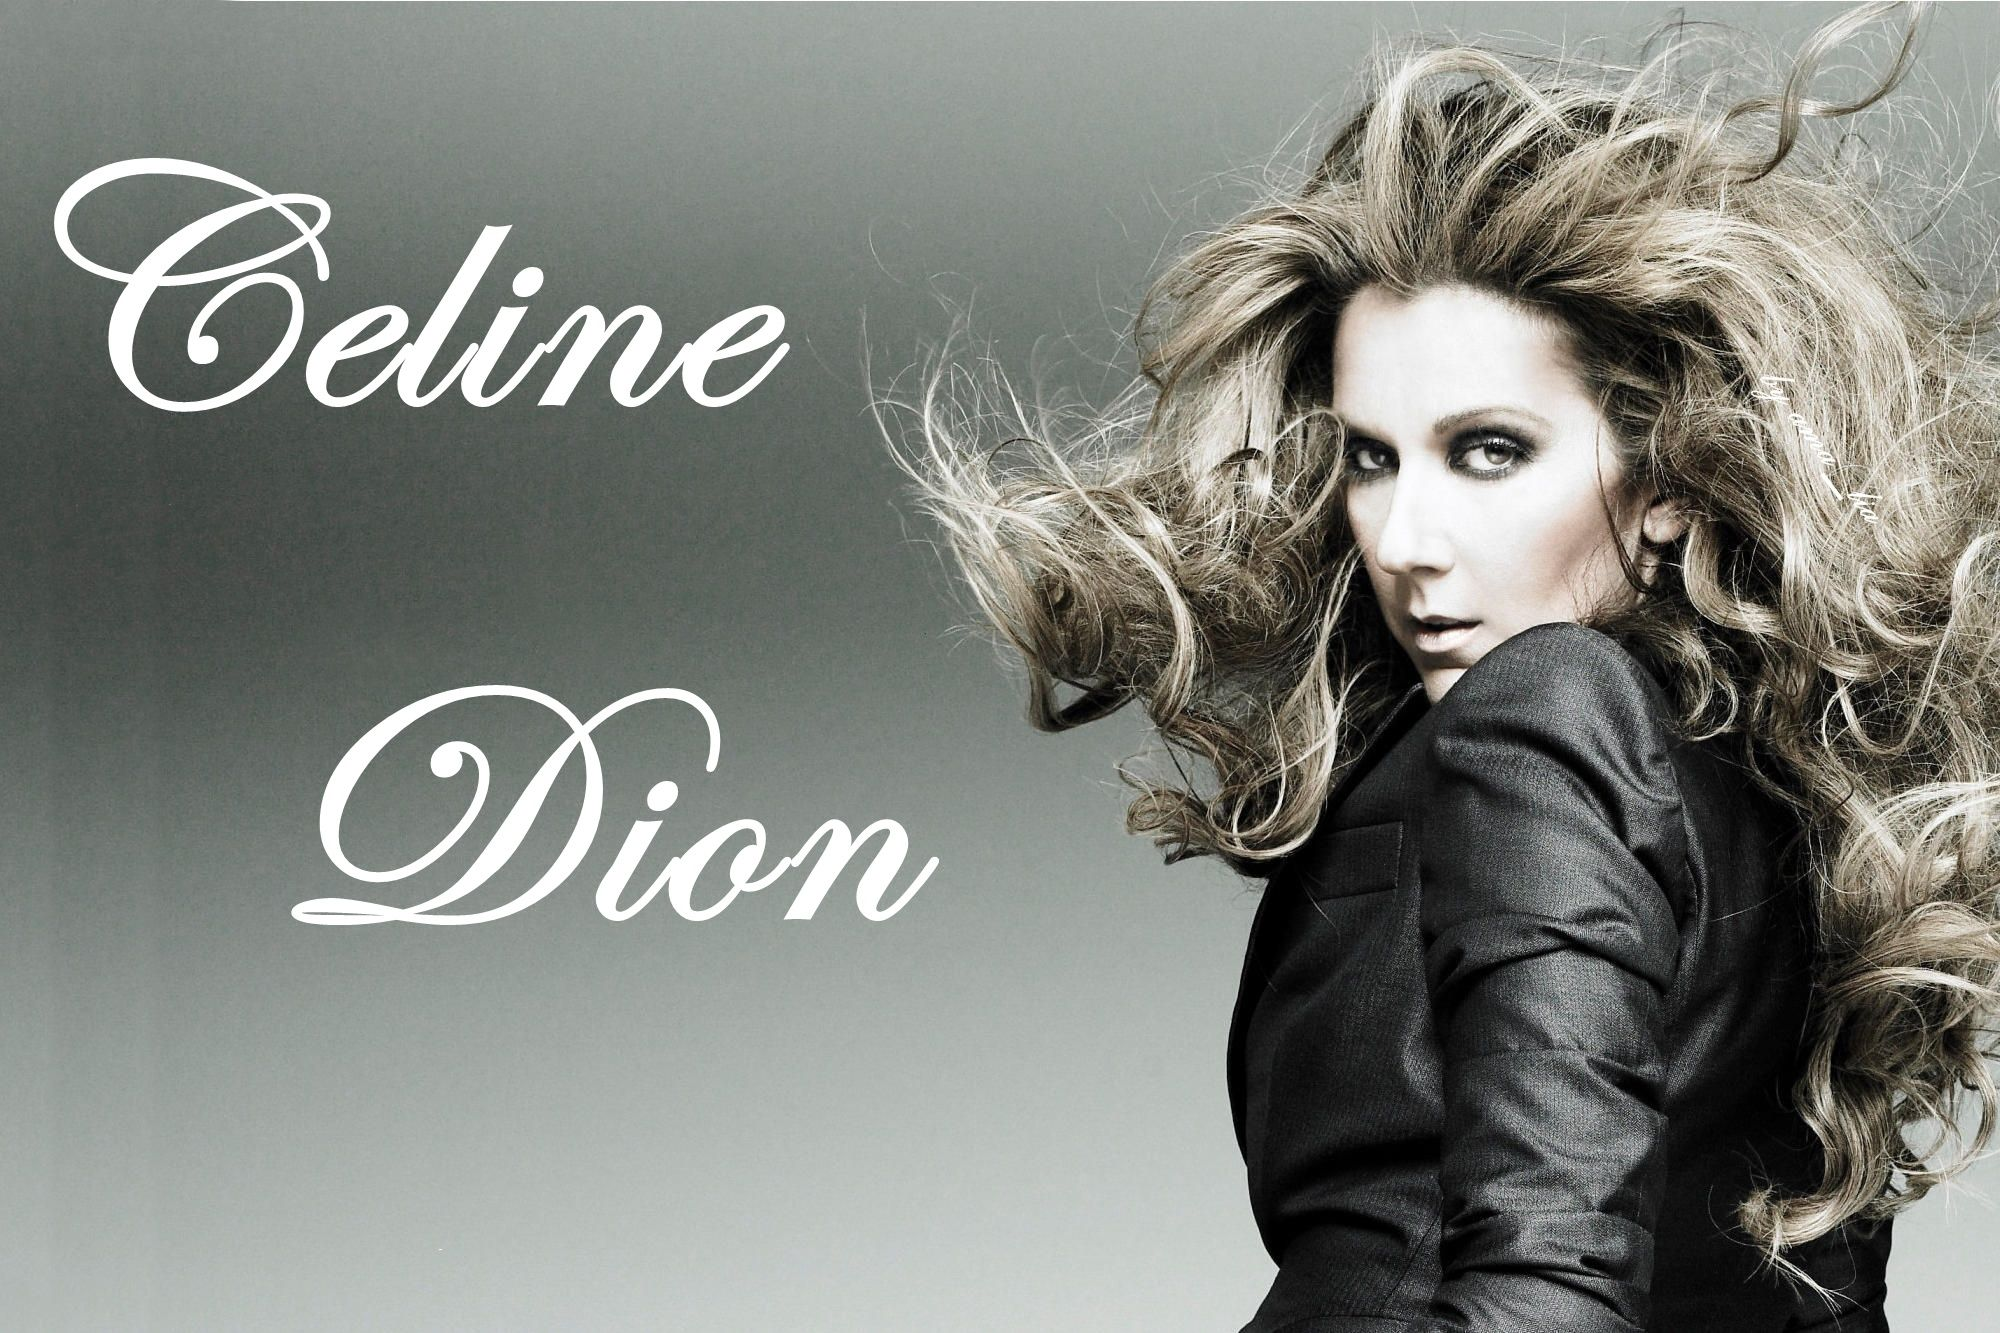 Celine Dion Hd Wallpapers Free Download Latest Celine Dion Hd Wallpapers For Computer Mobile Iphone Ipad Or A Celine Dion Celine Dion Greatest Hits Celine